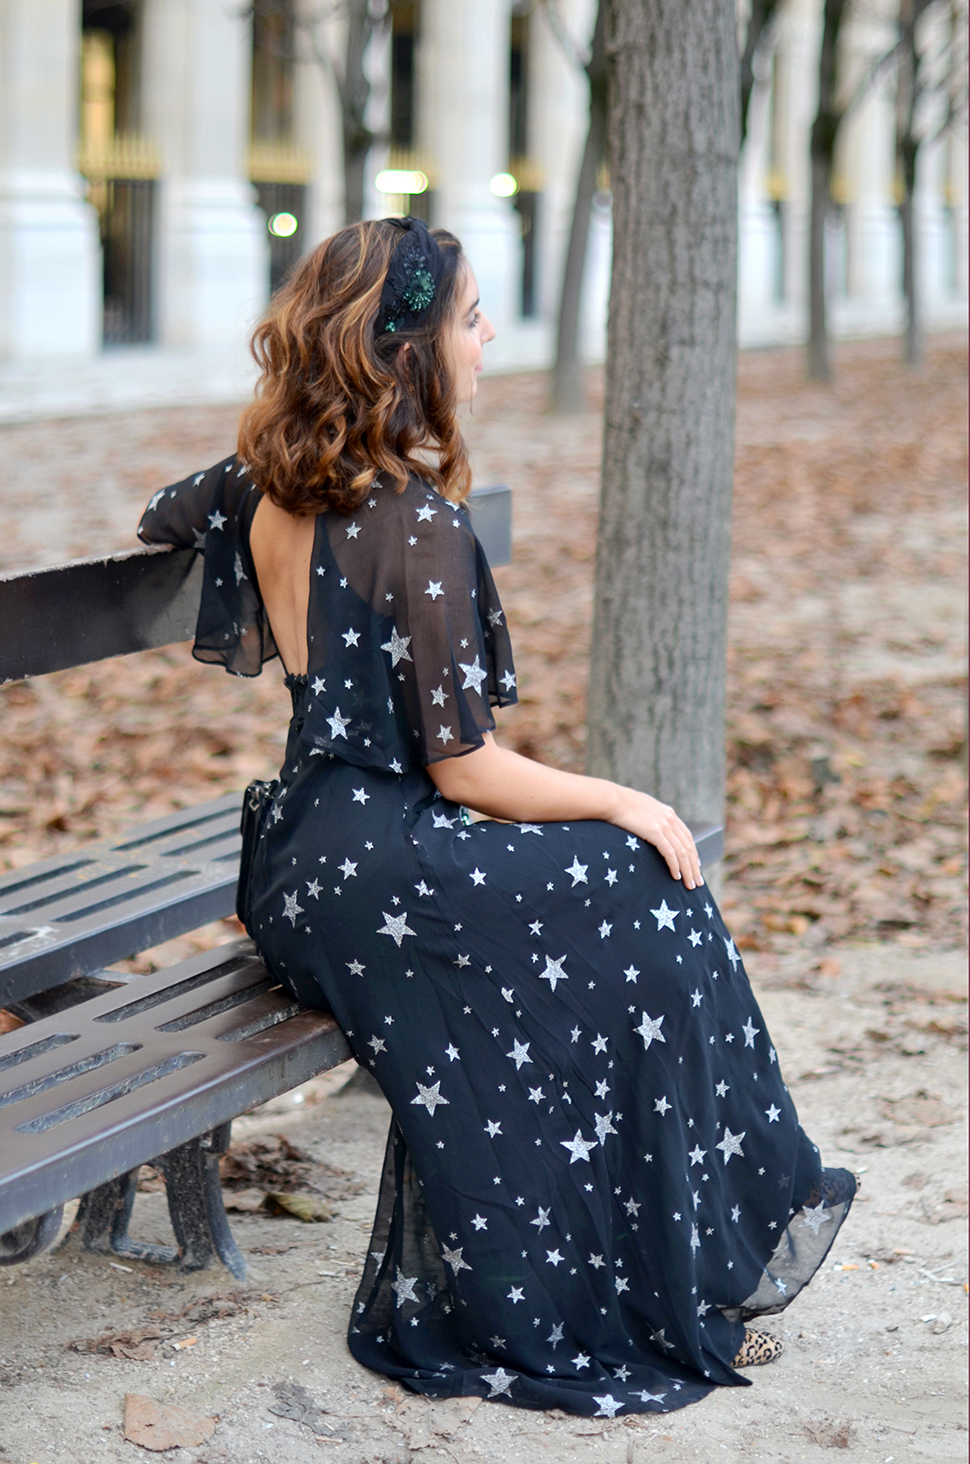 Helloitsvalentine_stars_dress_7